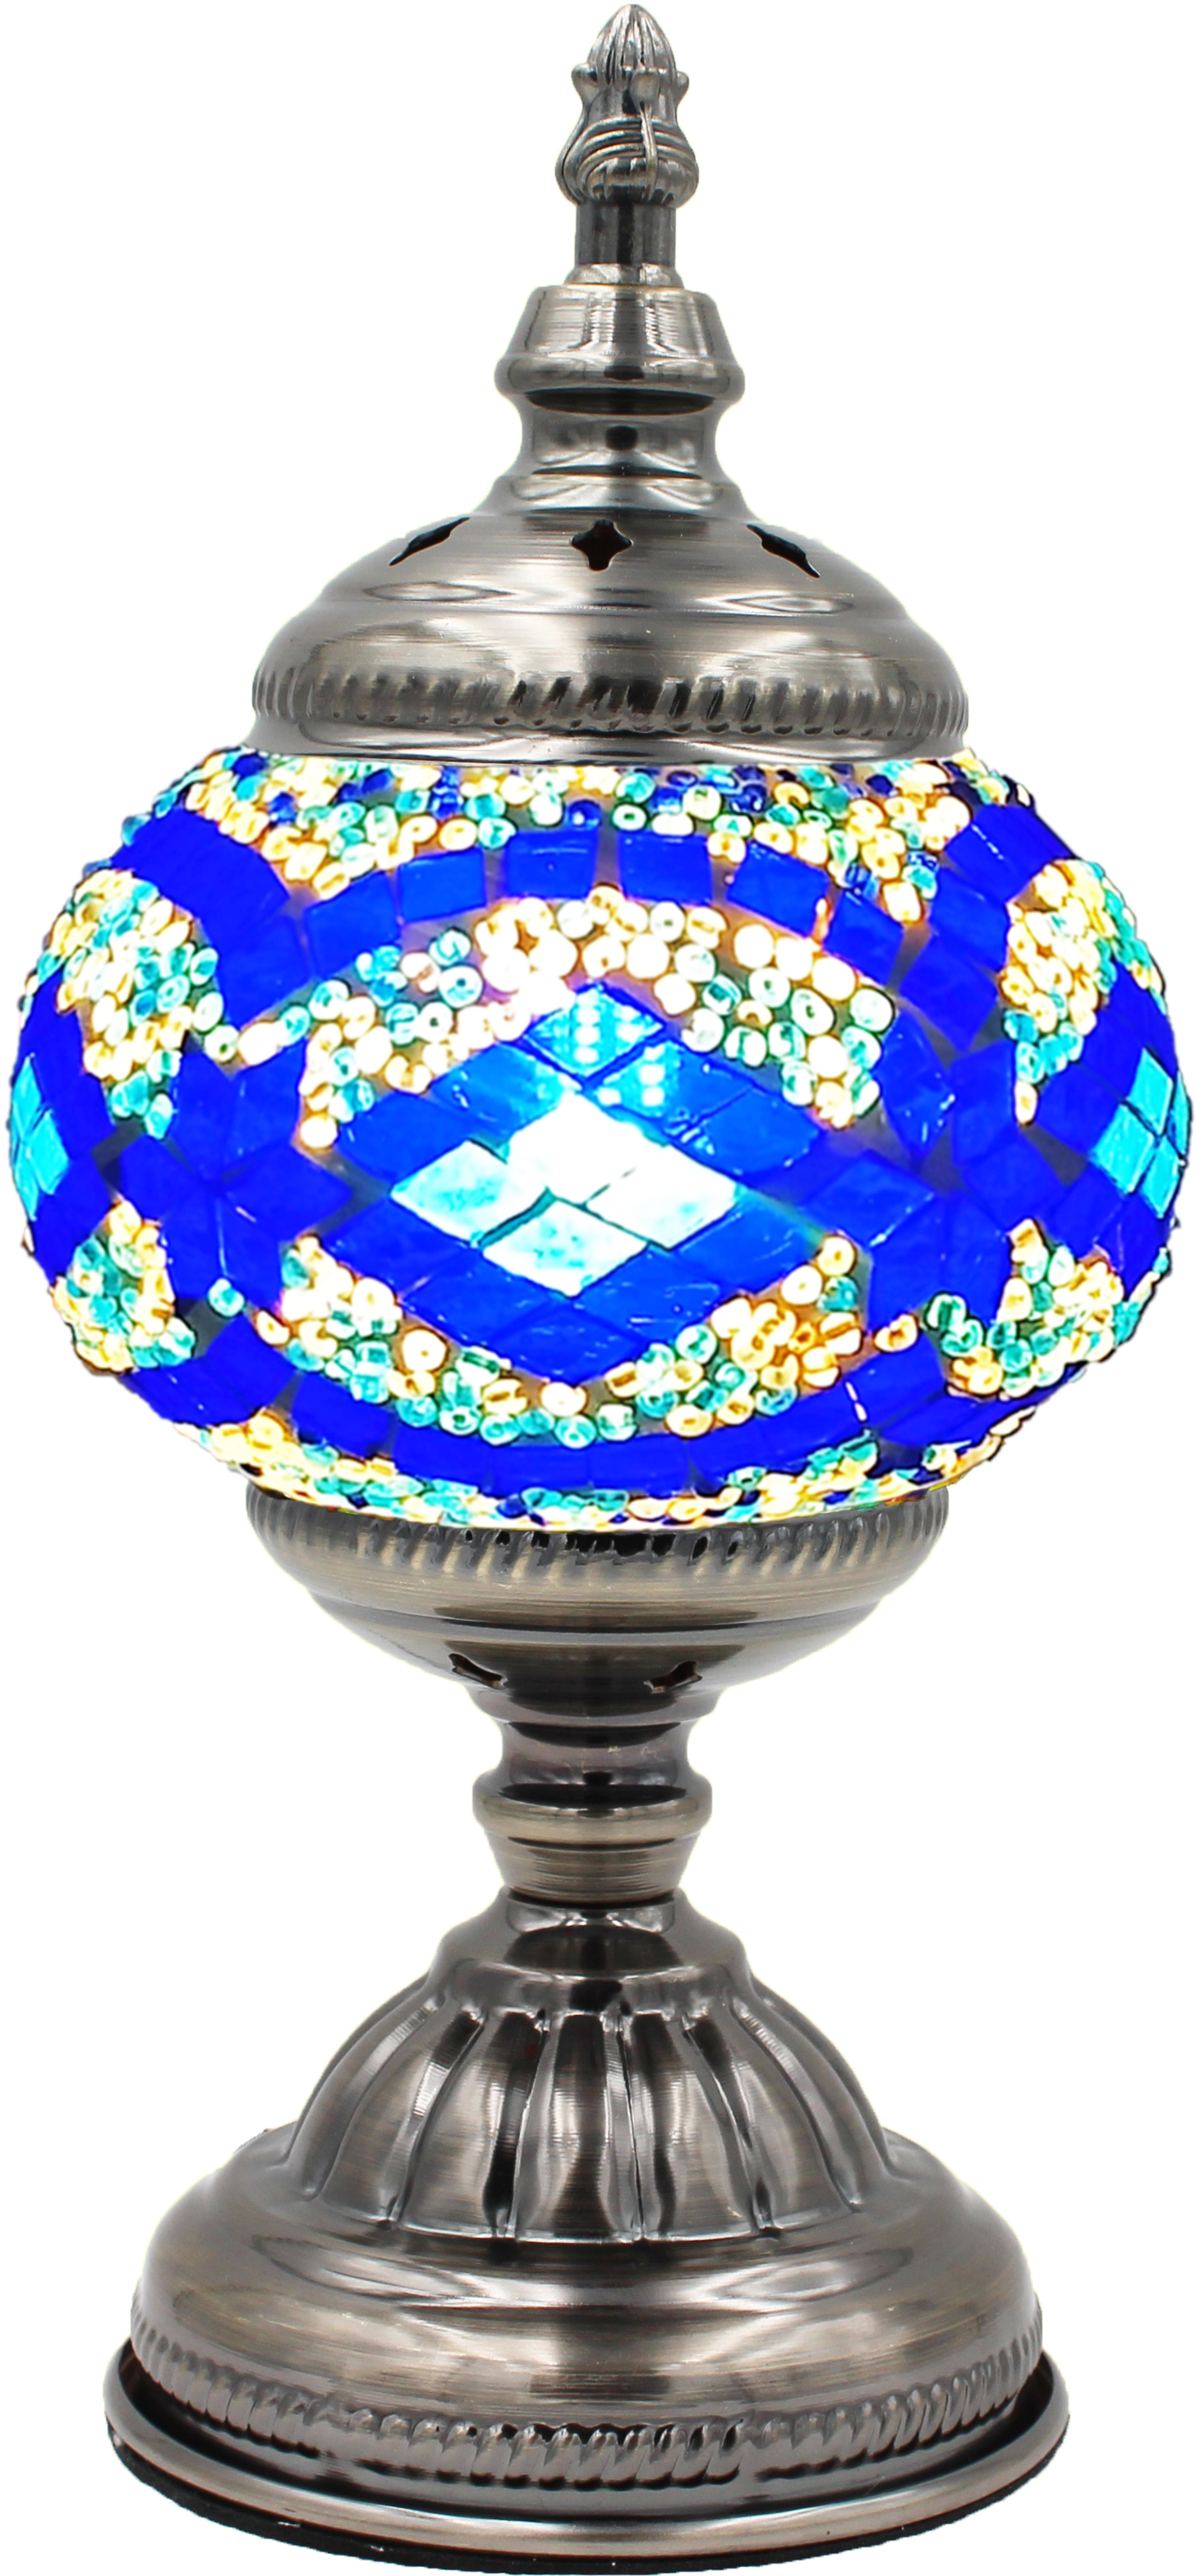 Hand Made Mosaic Glass Lamp - Without Bulb (009)